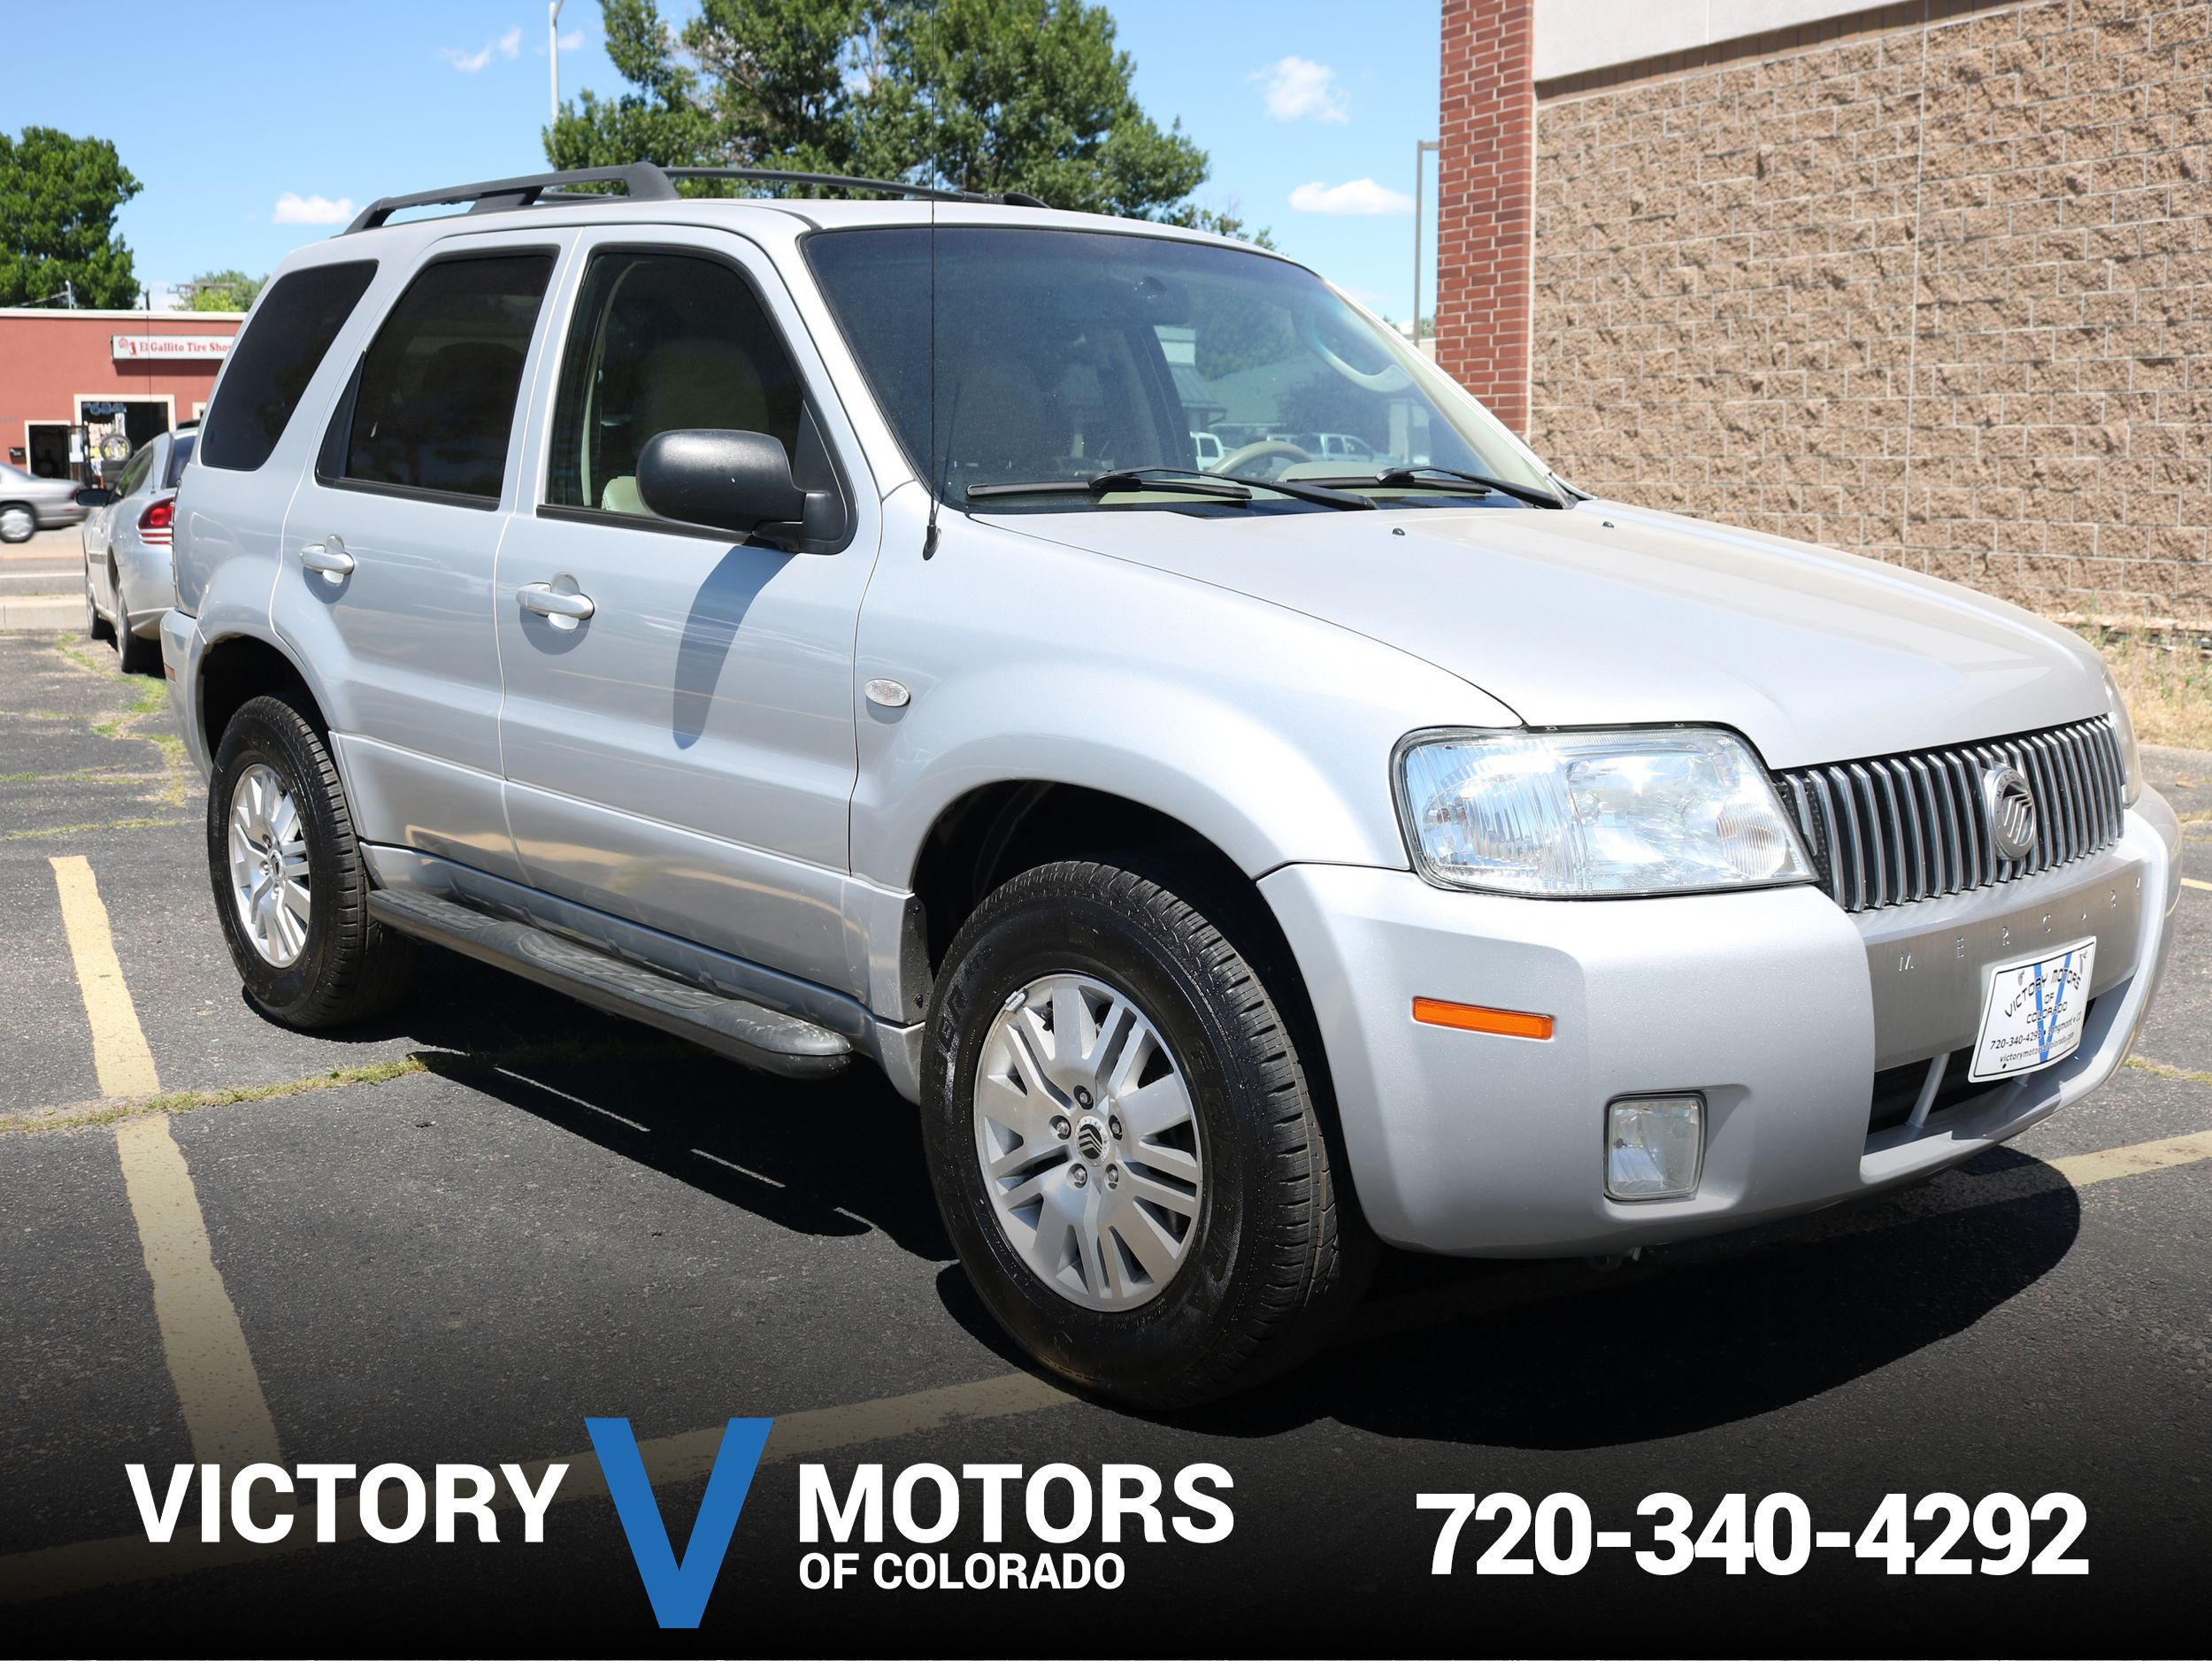 2007 mercury mariner premier victory motors of colorado rh victorymotorsofcolorado com 2007 mercury mariner hybrid owners manual 2007 Mercury Mariner Problems